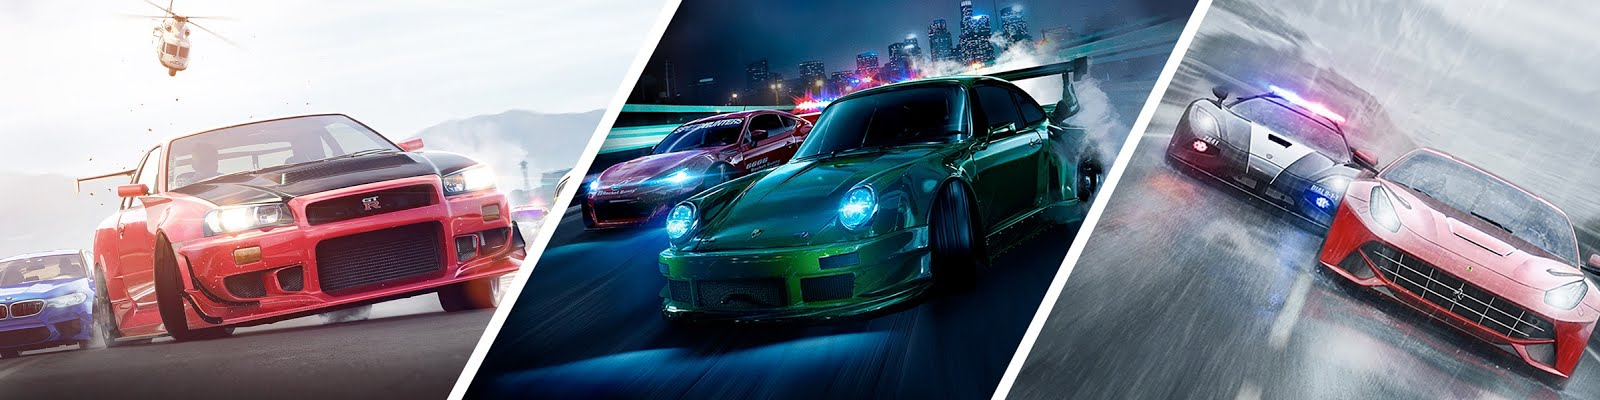 Need for Speed Download – Play Need for Speed Free PC Download